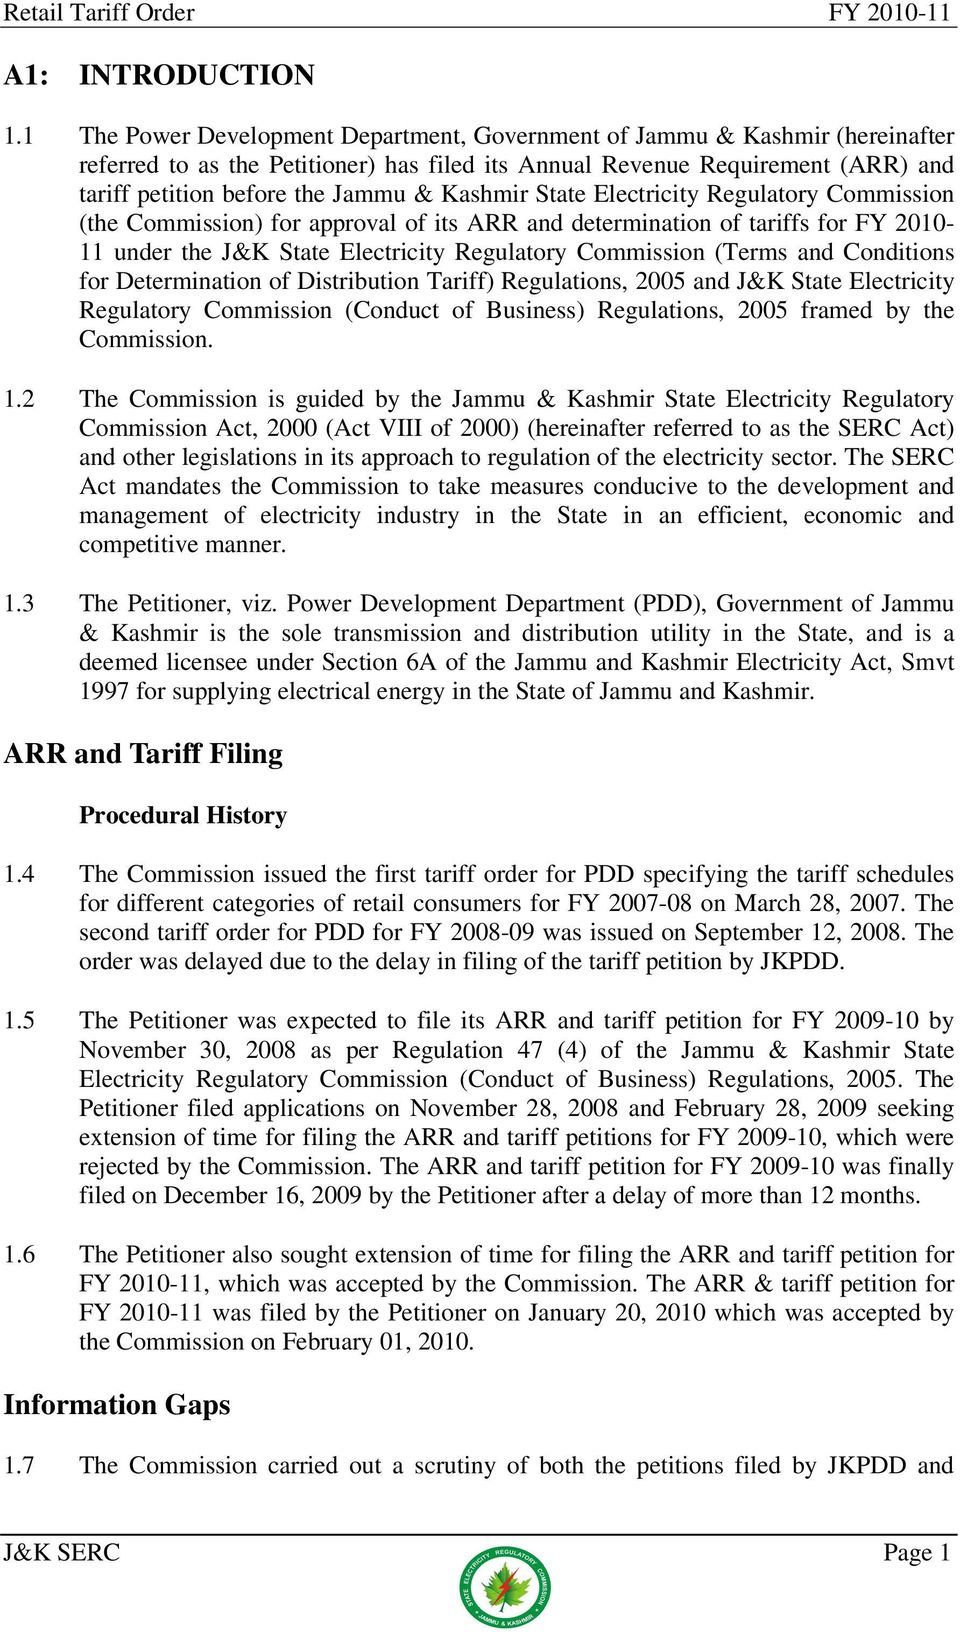 Kashmir State Electricity Regulatory Commission (the Commission) for approval of its ARR and determination of tariffs for FY 2010-11 under the J&K State Electricity Regulatory Commission (Terms and